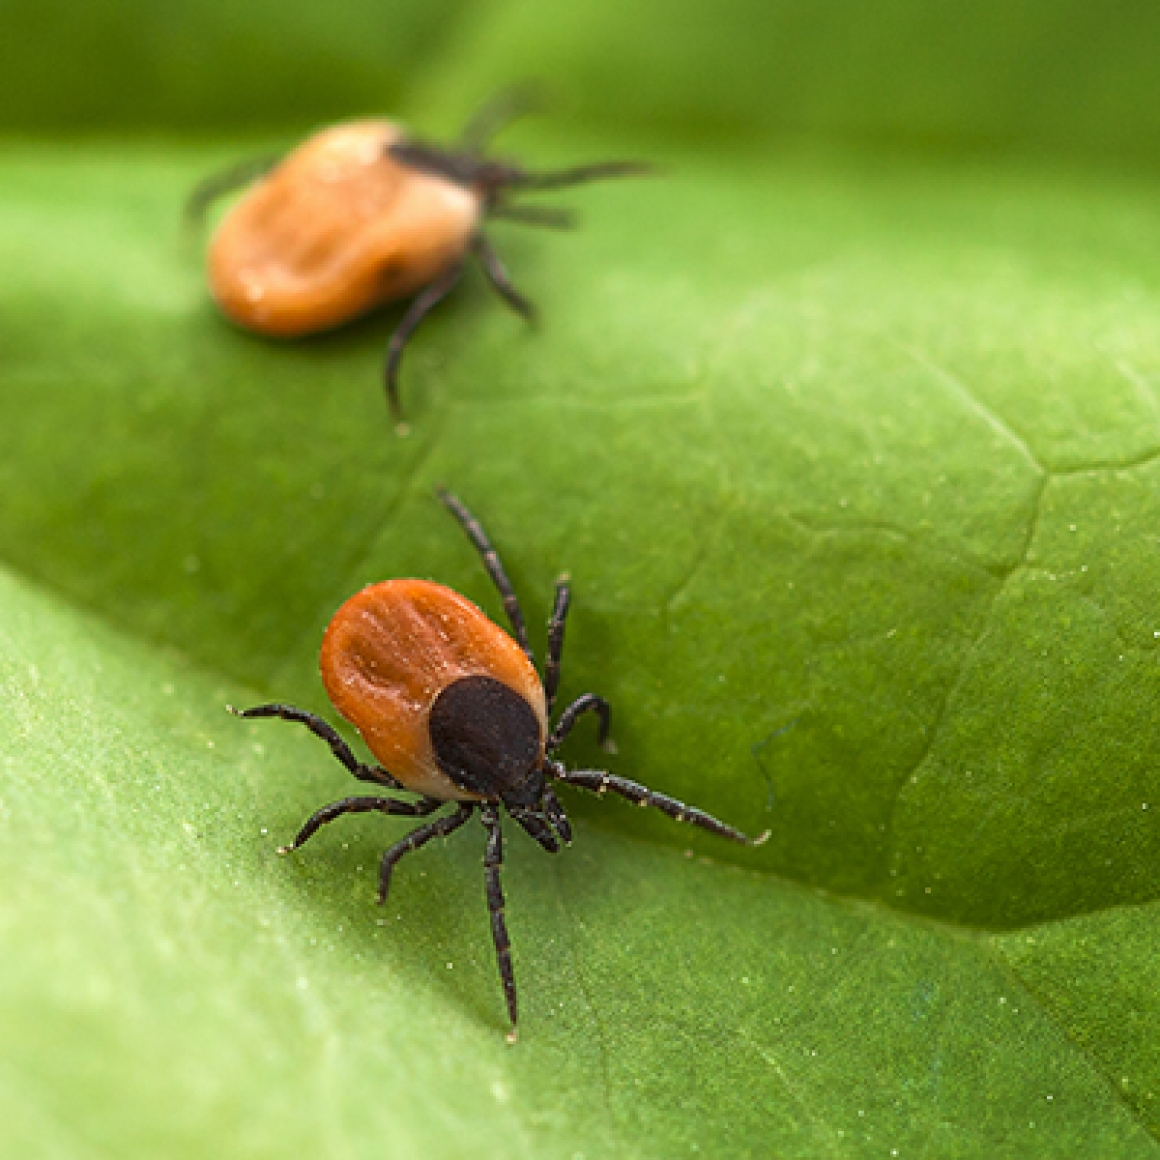 Where are the ticks and what are the diseases they carry?